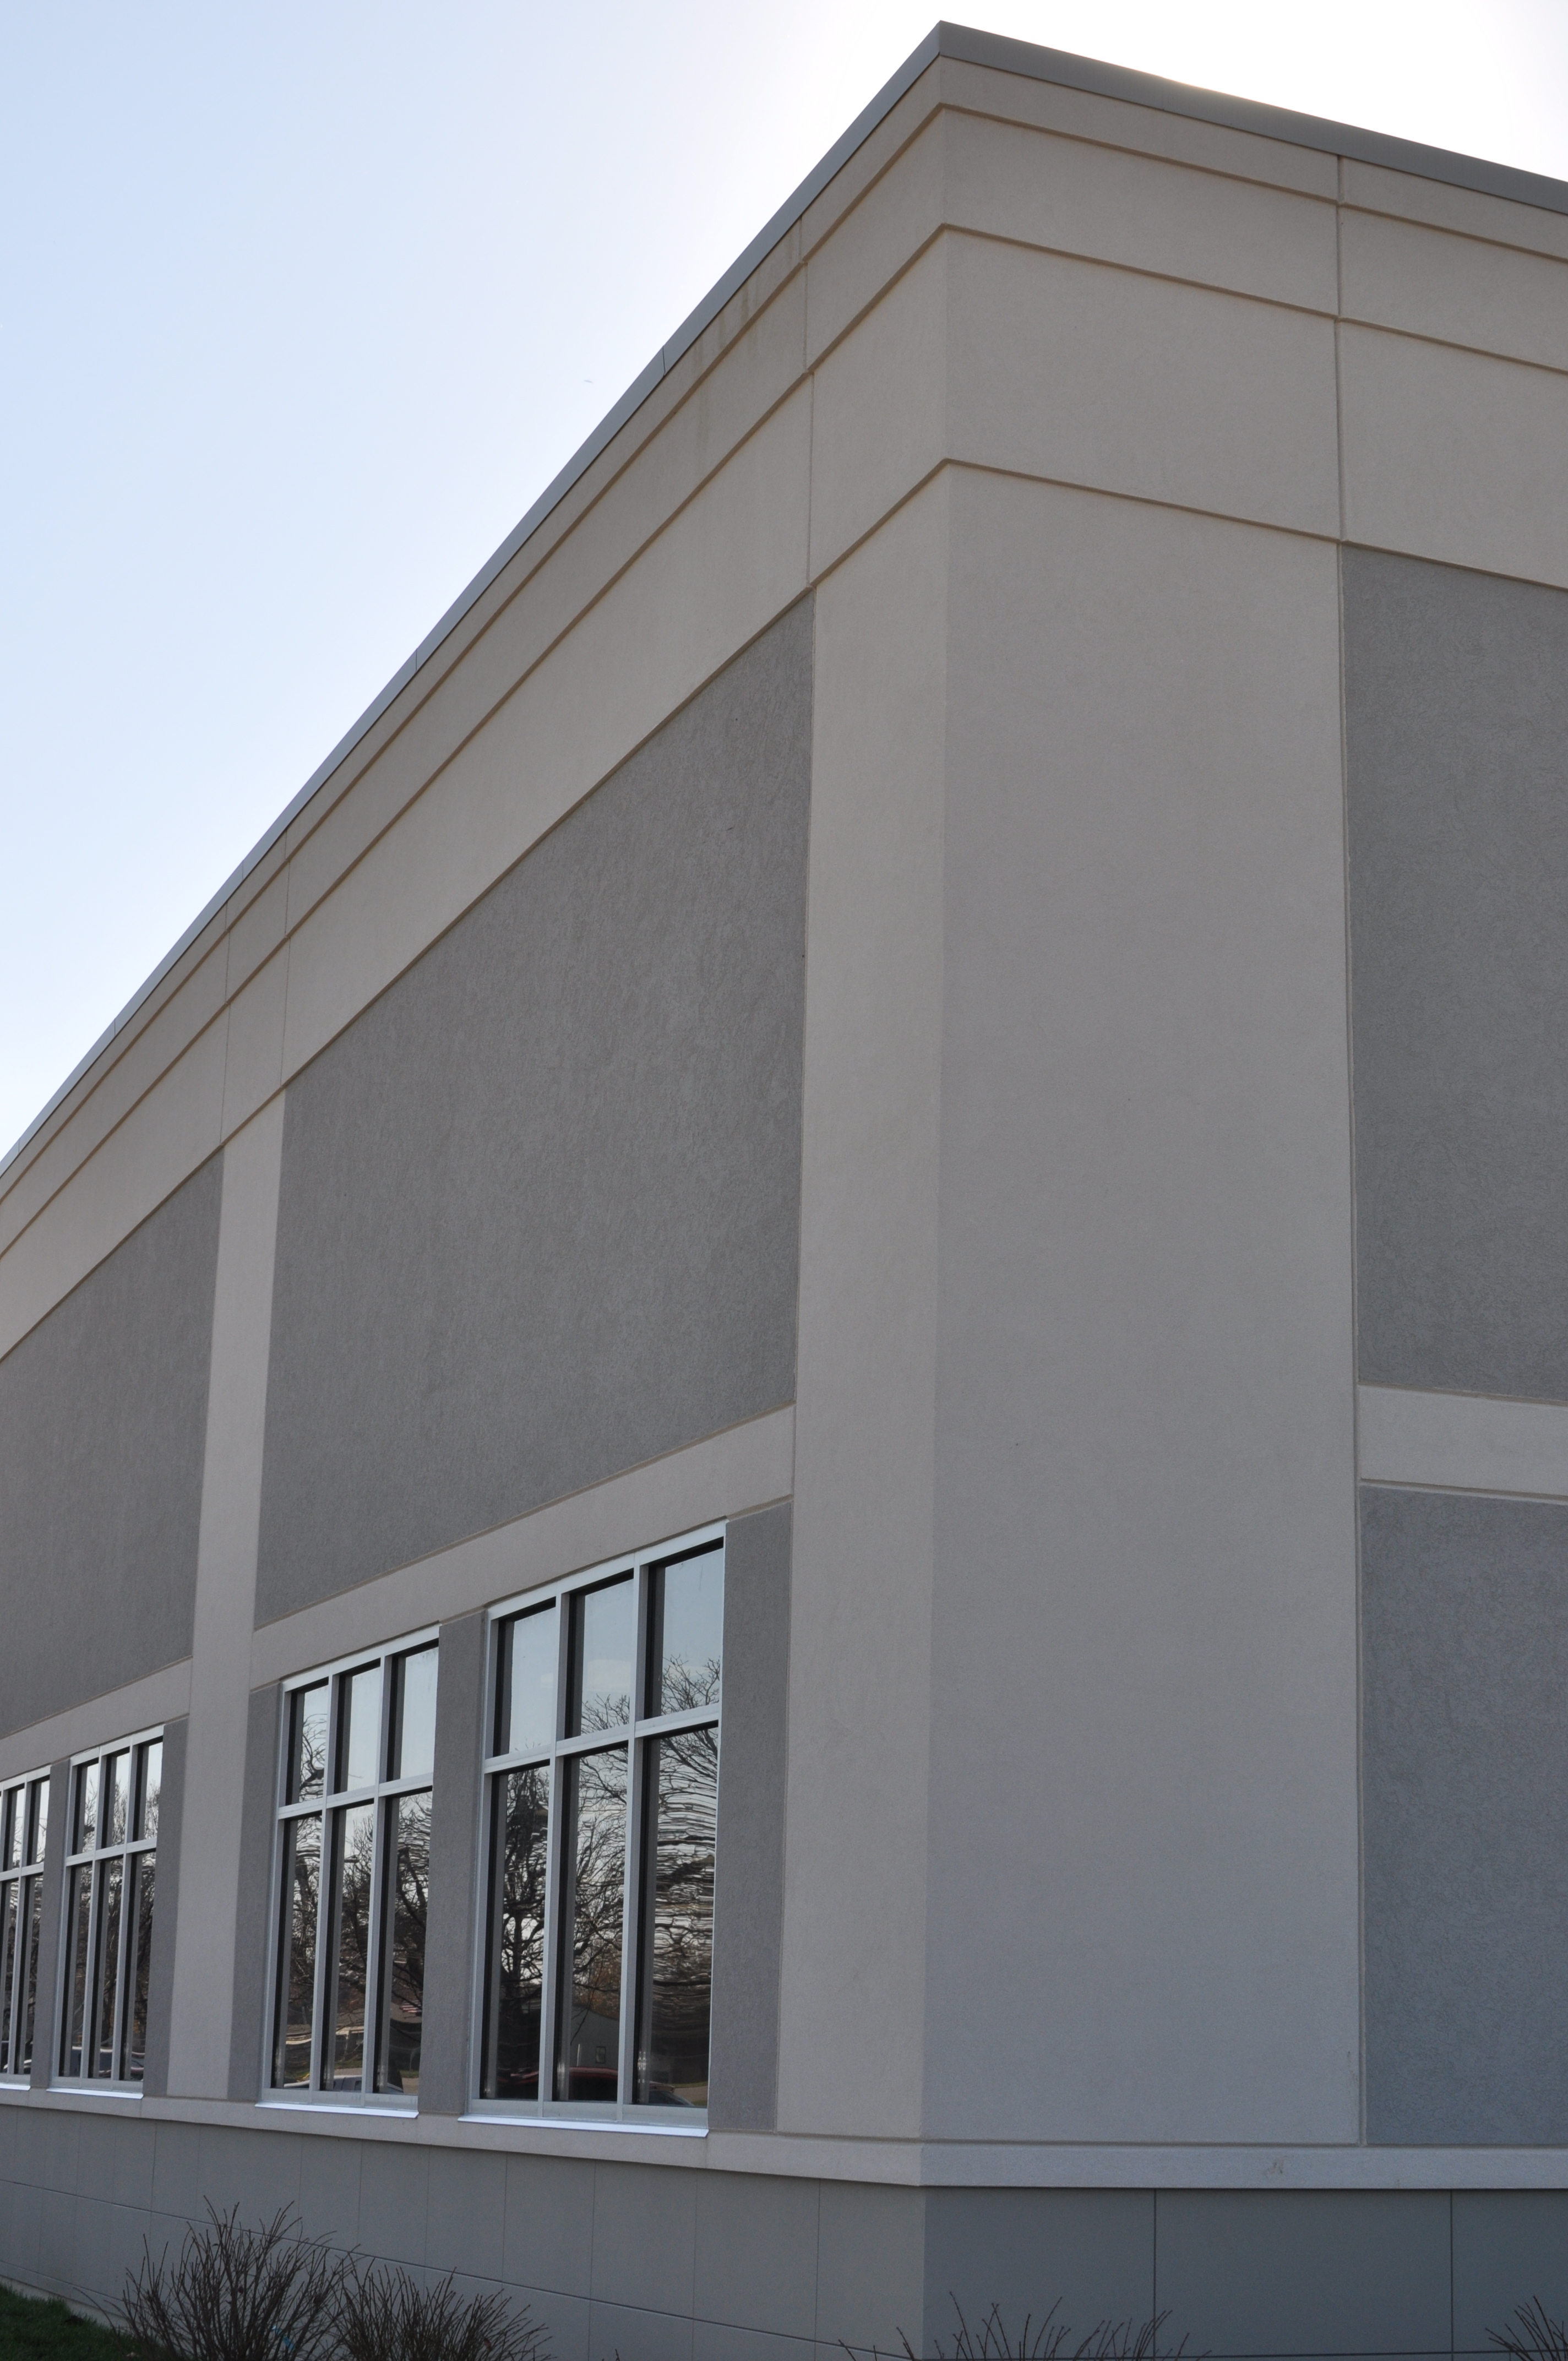 Exterior insulation and finish systems eifs prime construction for Exterior insulation and finish systems eifs